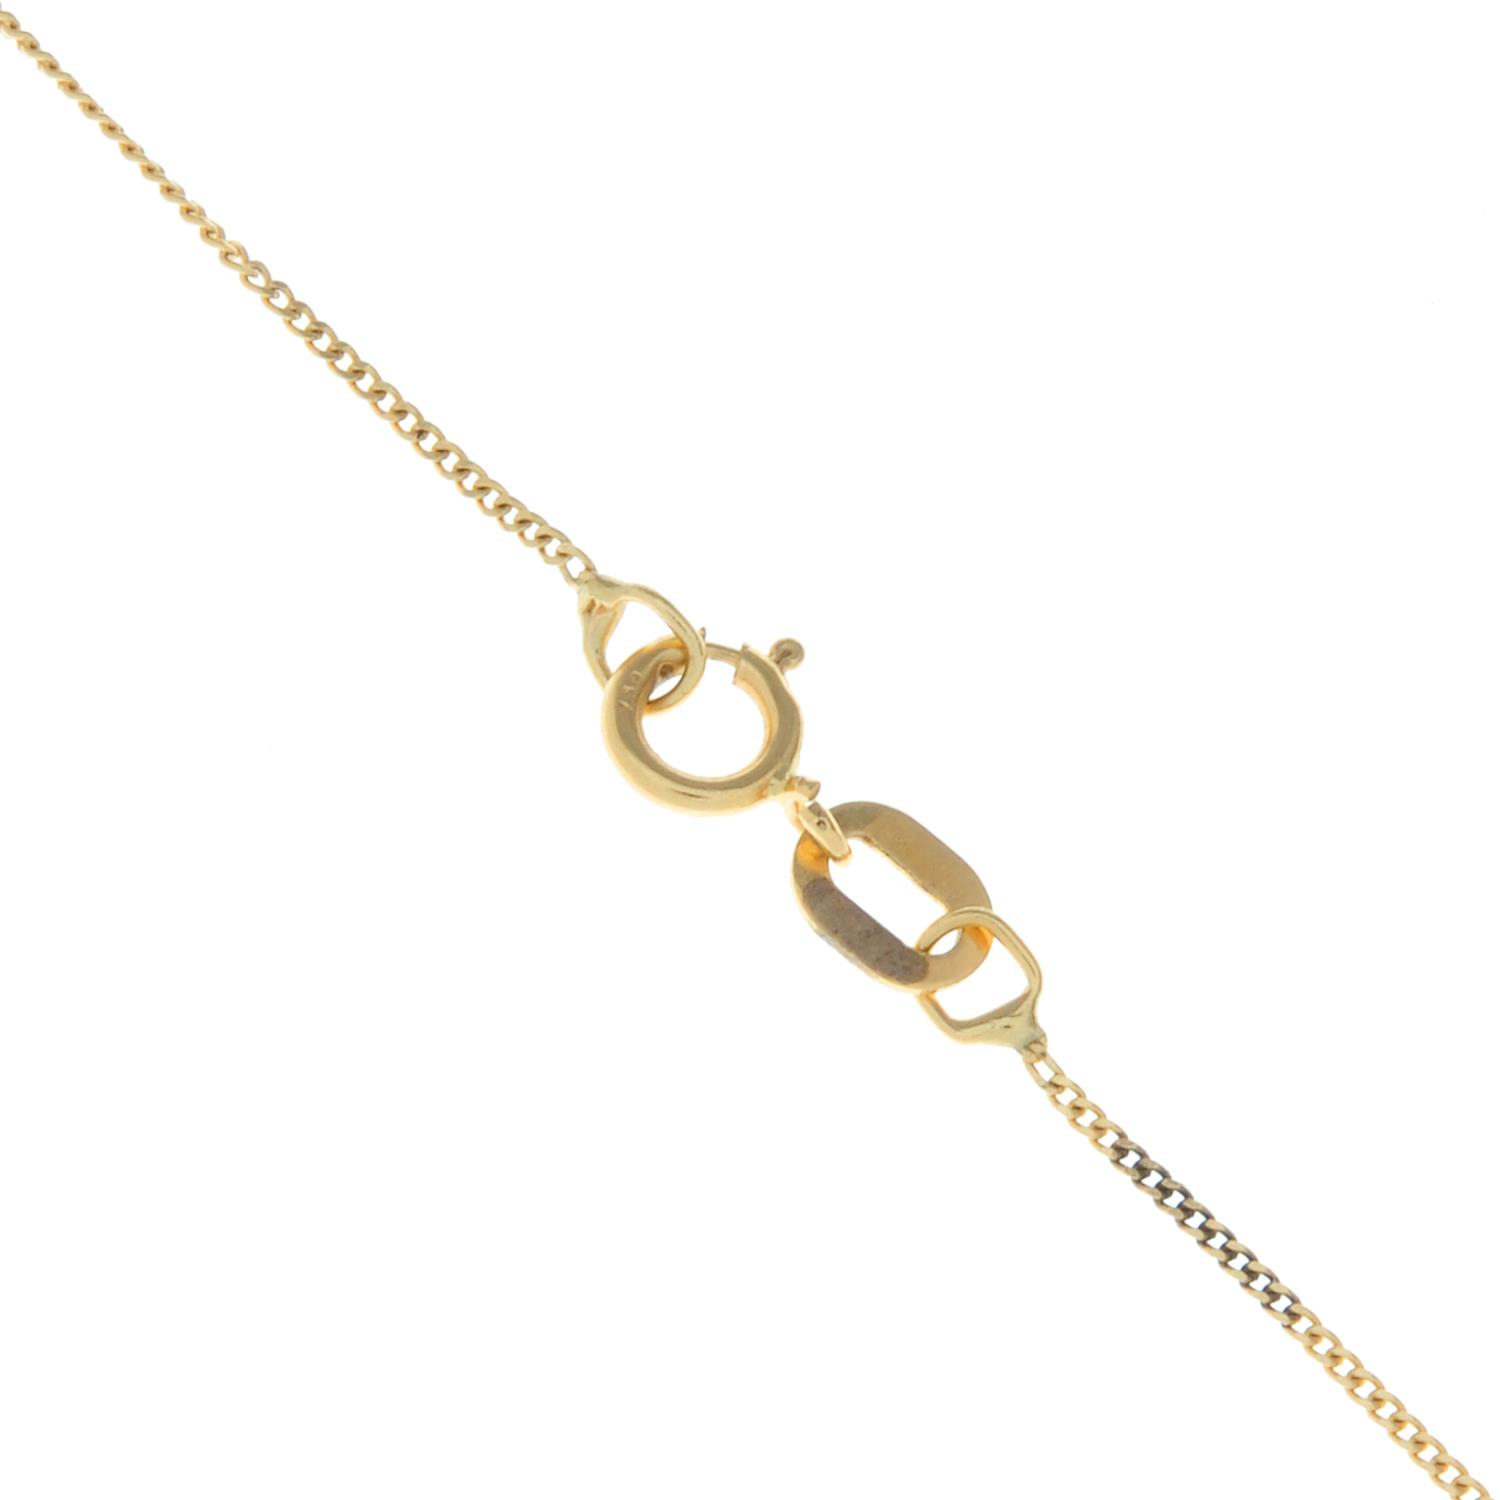 A 9ct gold opal pendant, with chain.Hallmarks for Sheffield.Length of pendant 2.1cms. - Image 3 of 3